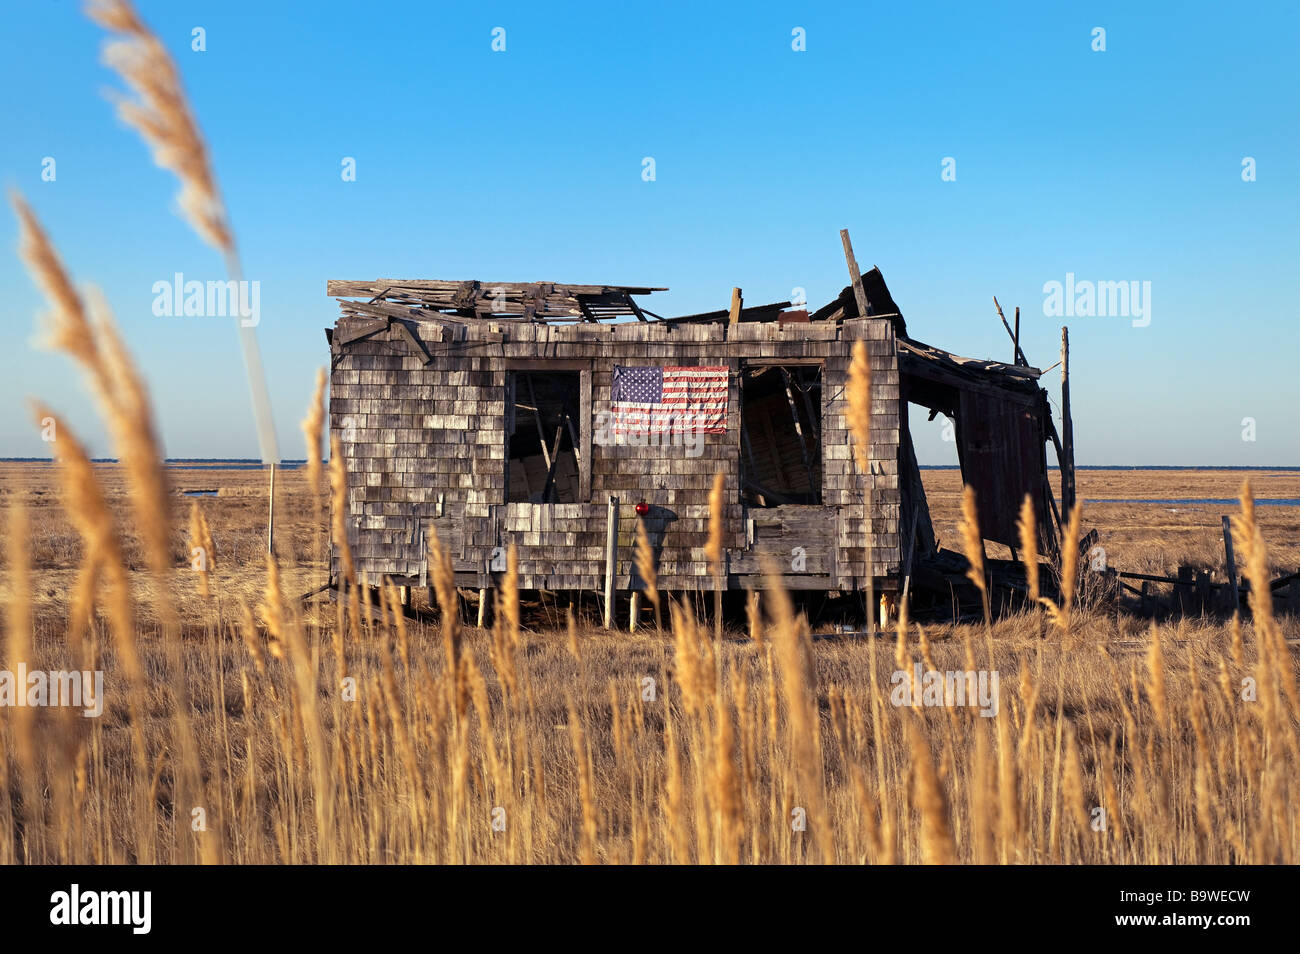 Ruined and abandoned shack with American flag and Christmas wreath - Stock Image